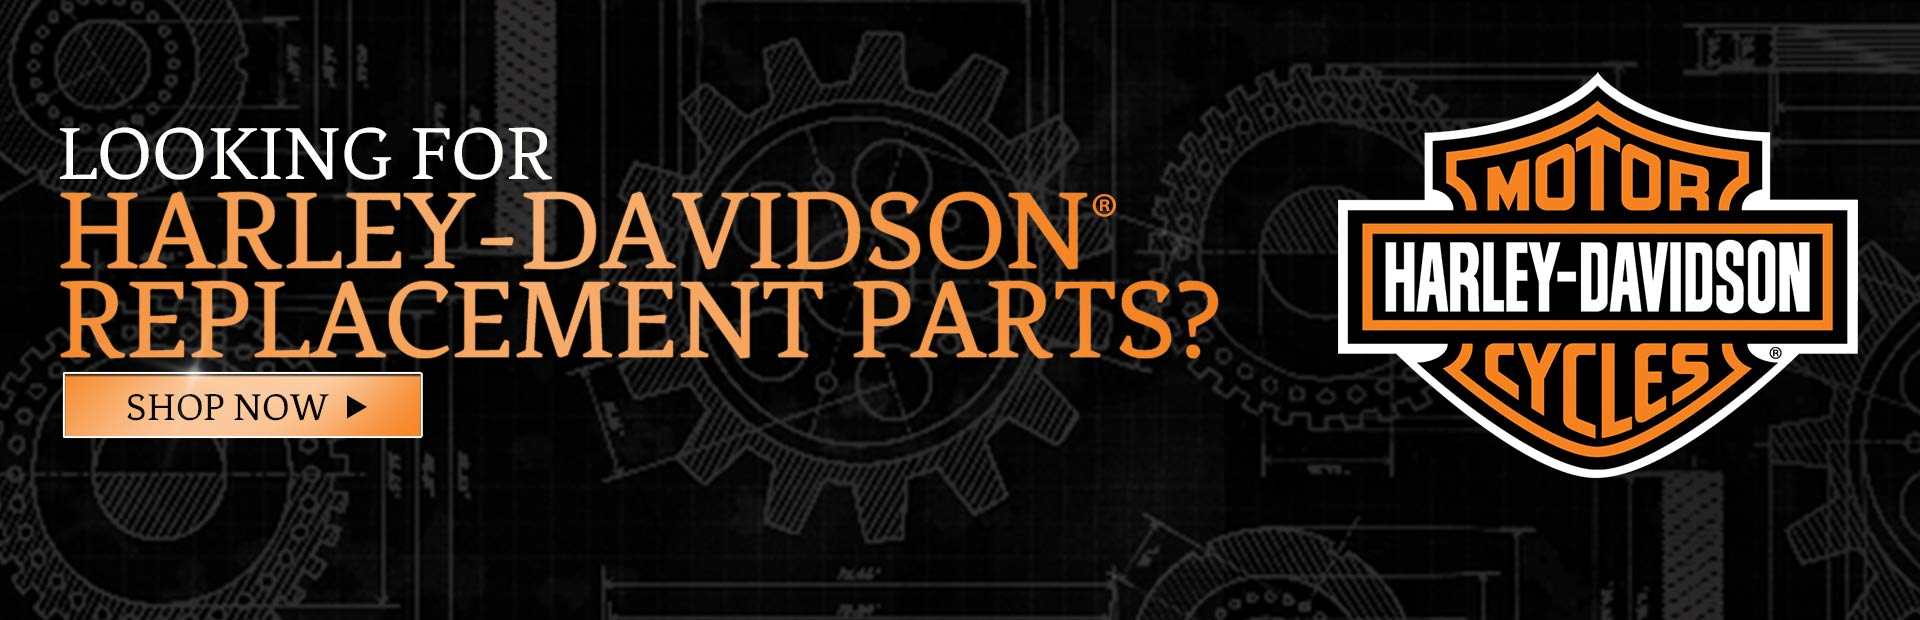 Are you looking for Harley-Davidson® parts? Click here to shop now!